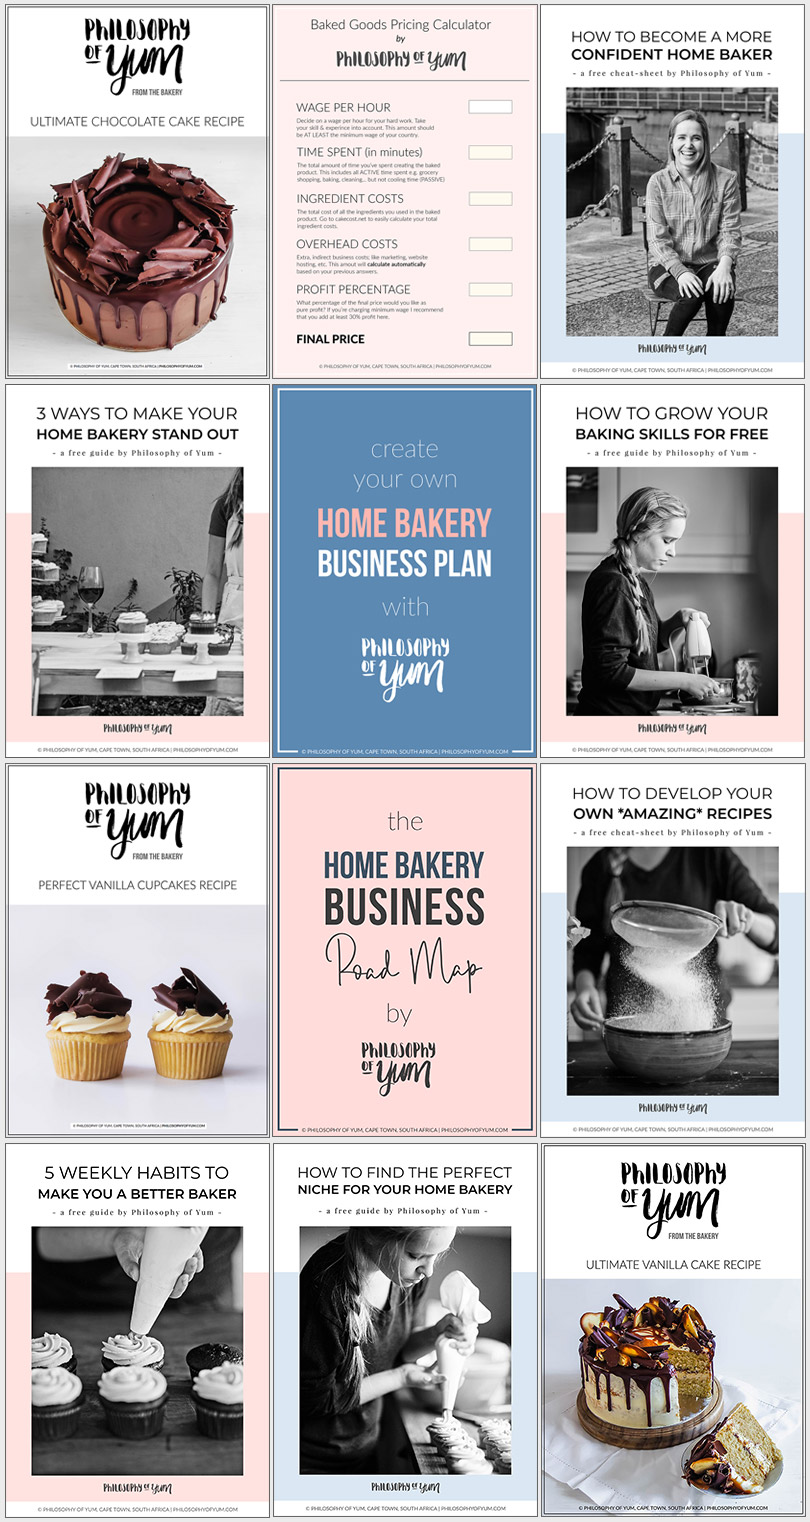 Want to grow your Home Bakery Business? Here's a free library full of resources, tips, tools and ideas to grow your Home Baking Business. Click through to access the free library! #homebakery #homebaking #bakingbusiness #cakebusiness